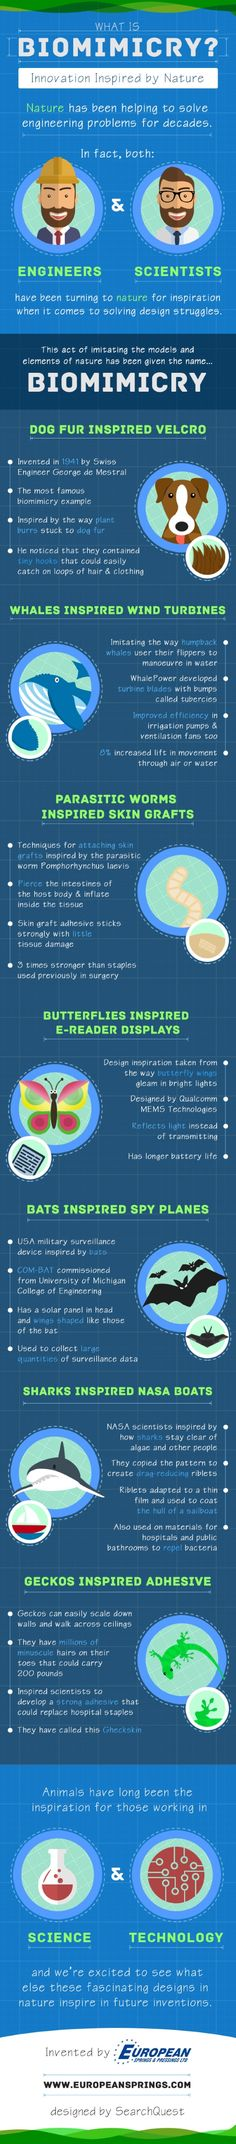 Did you know that sharks inspired NASA boats and that butterflies inspired e-readers? If the answer is no, then check out this well-informed and educational infographic that can tell you everything you need to know, created by European Springs & Pressings LTD. The infographic that looks at some of the best examples of nature inspired biomimicry and provides lots of fun facts, such as how Velcro was designed after dogs fur and spy planes were modeled after bat wings.